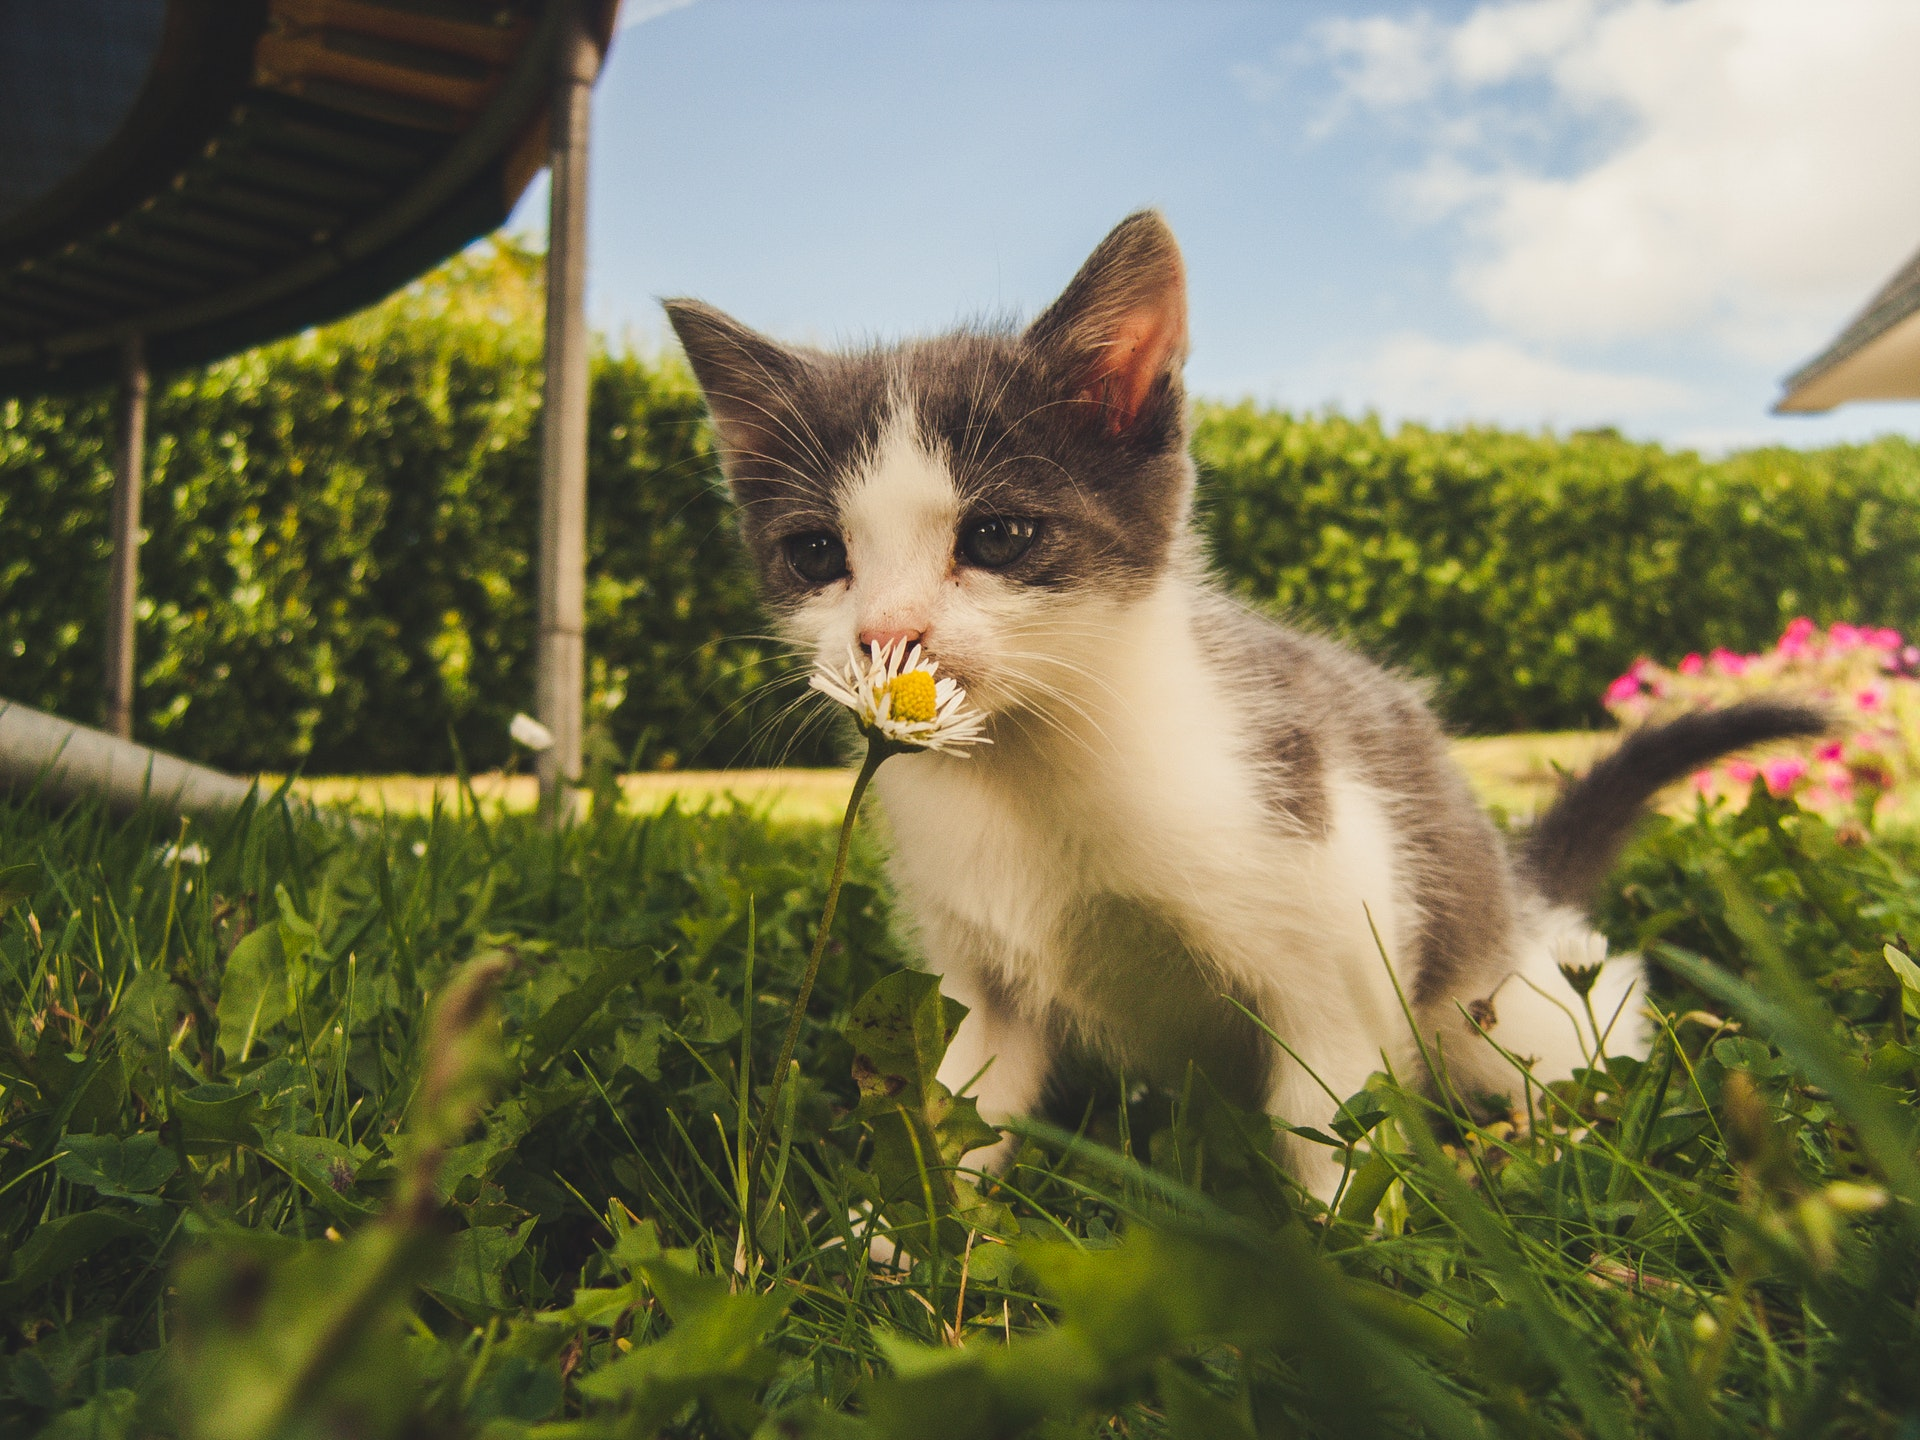 Kitten in grassy field | 10 Eco-Friendly Holiday Gift Ideas for Cat Lovers